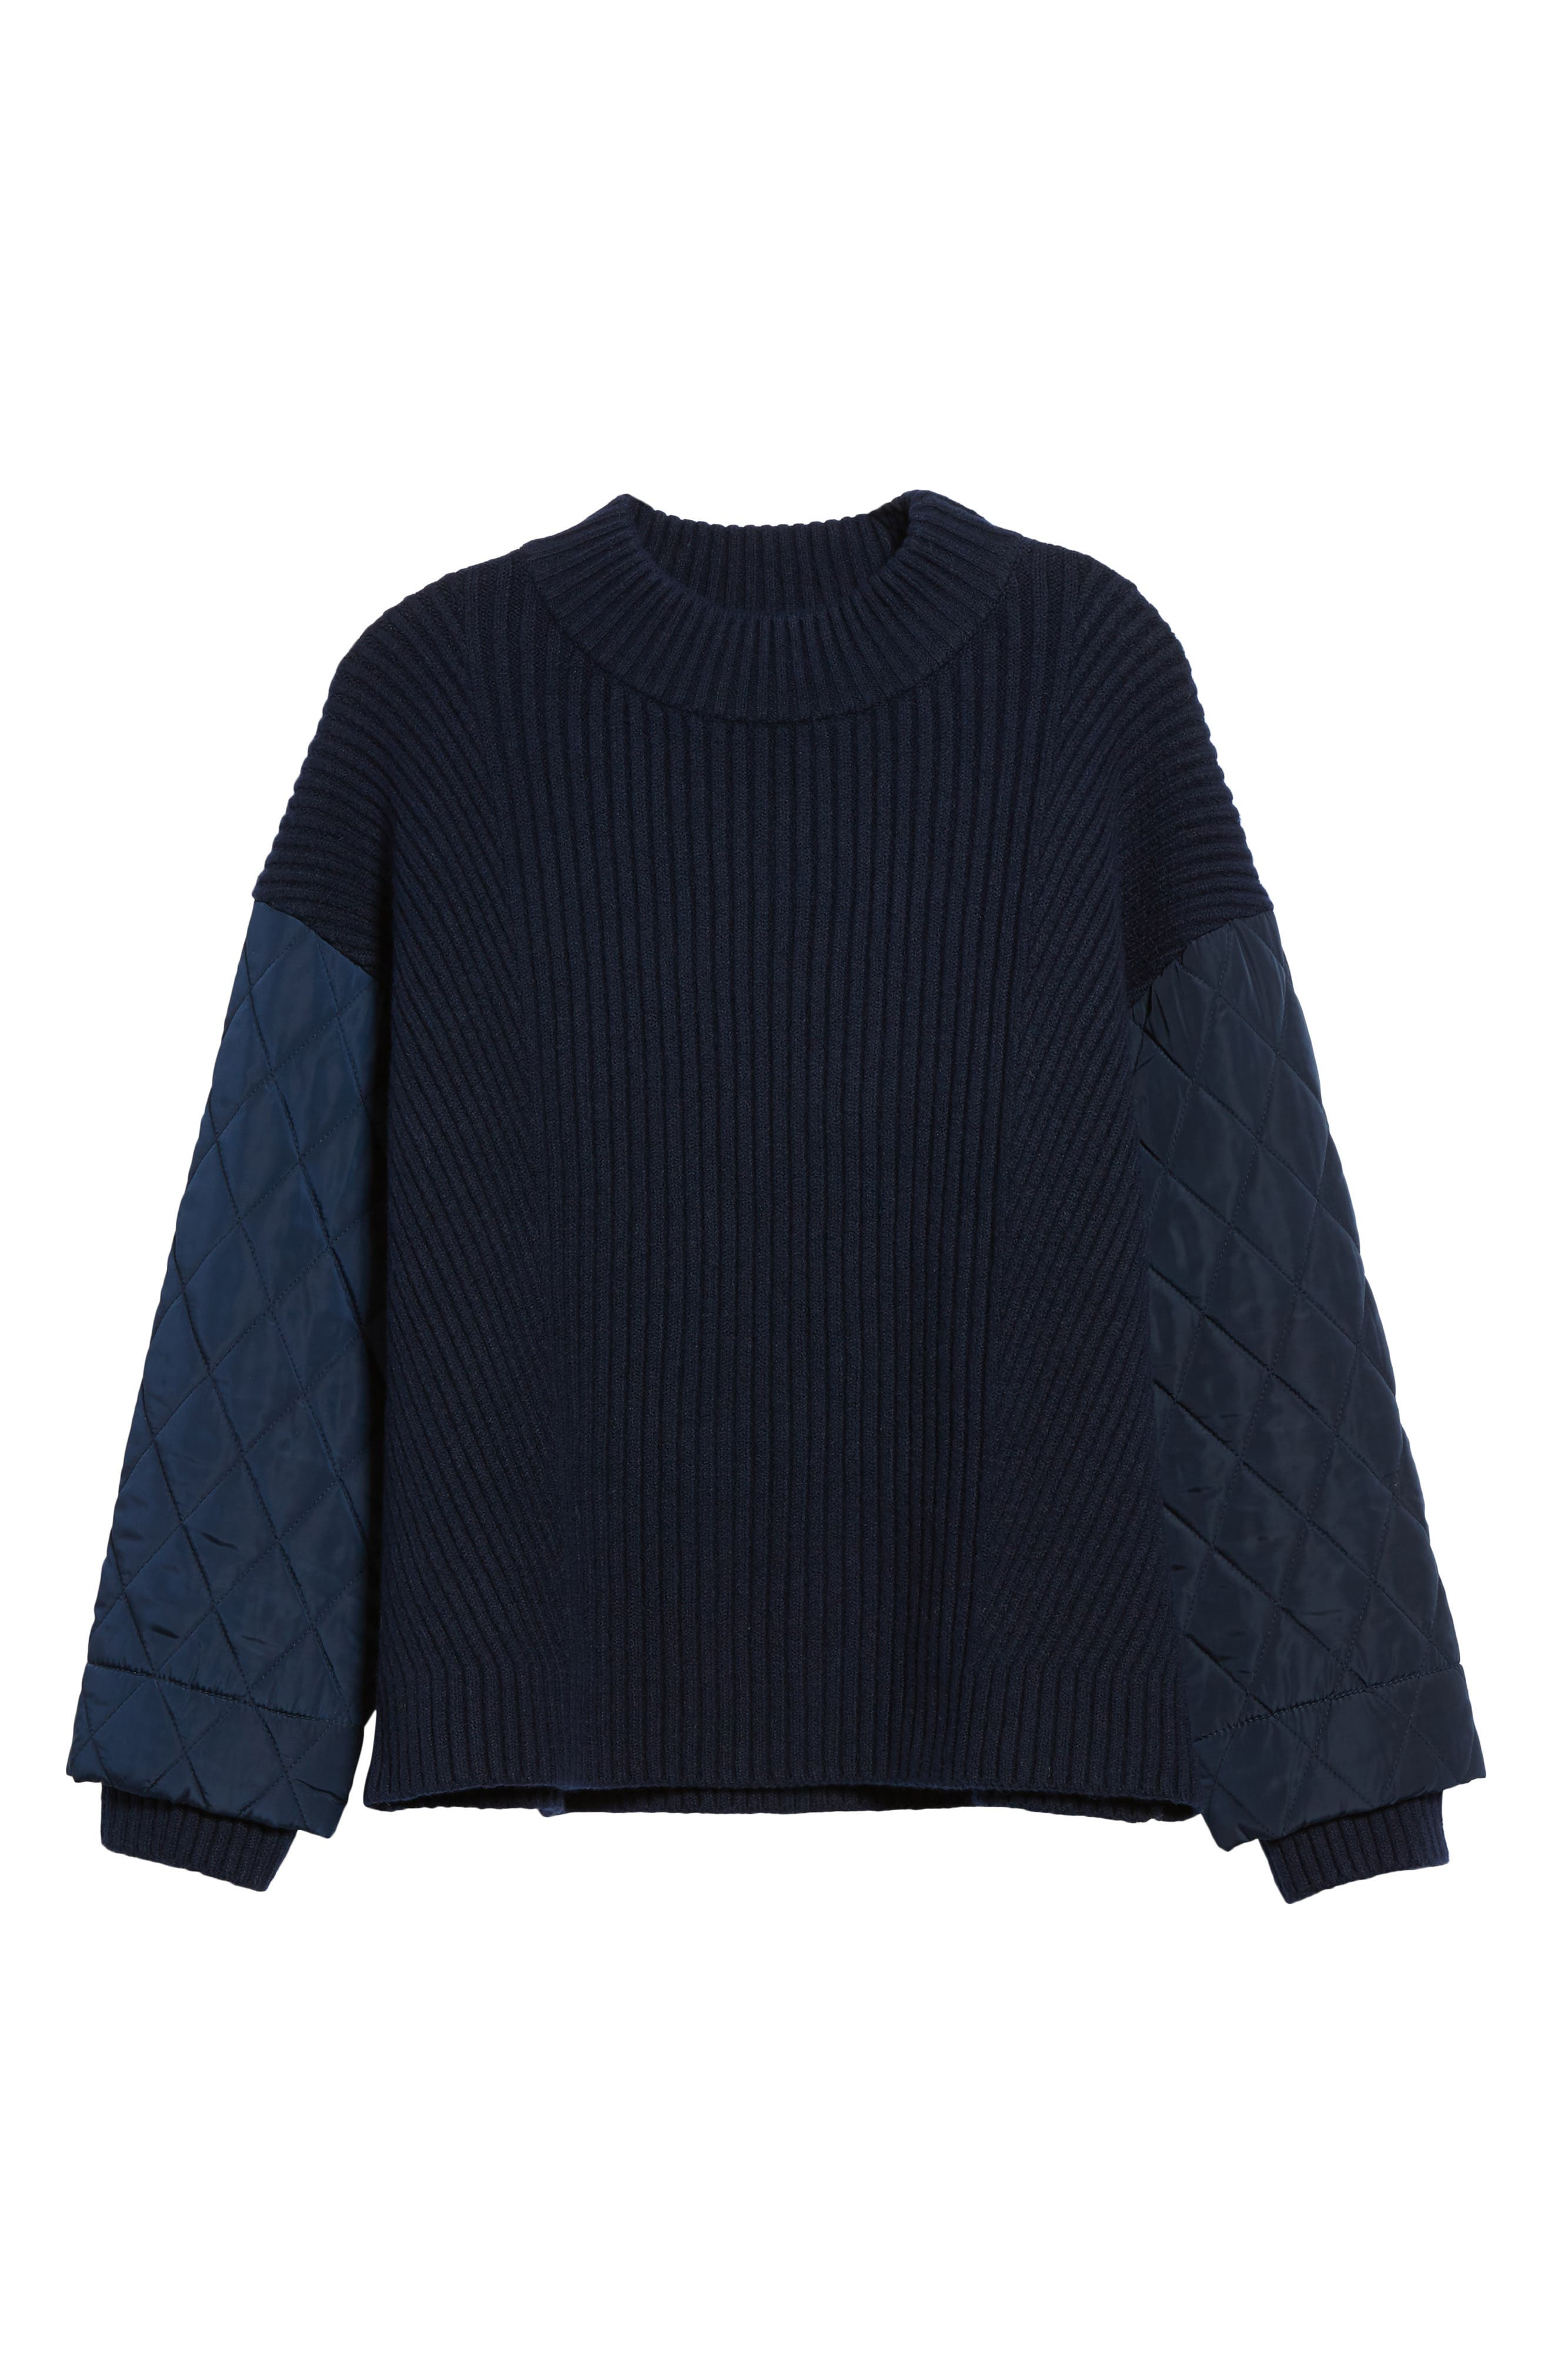 Quilted Sleeve Sweater,                             Alternate thumbnail 6, color,                             INDIGO